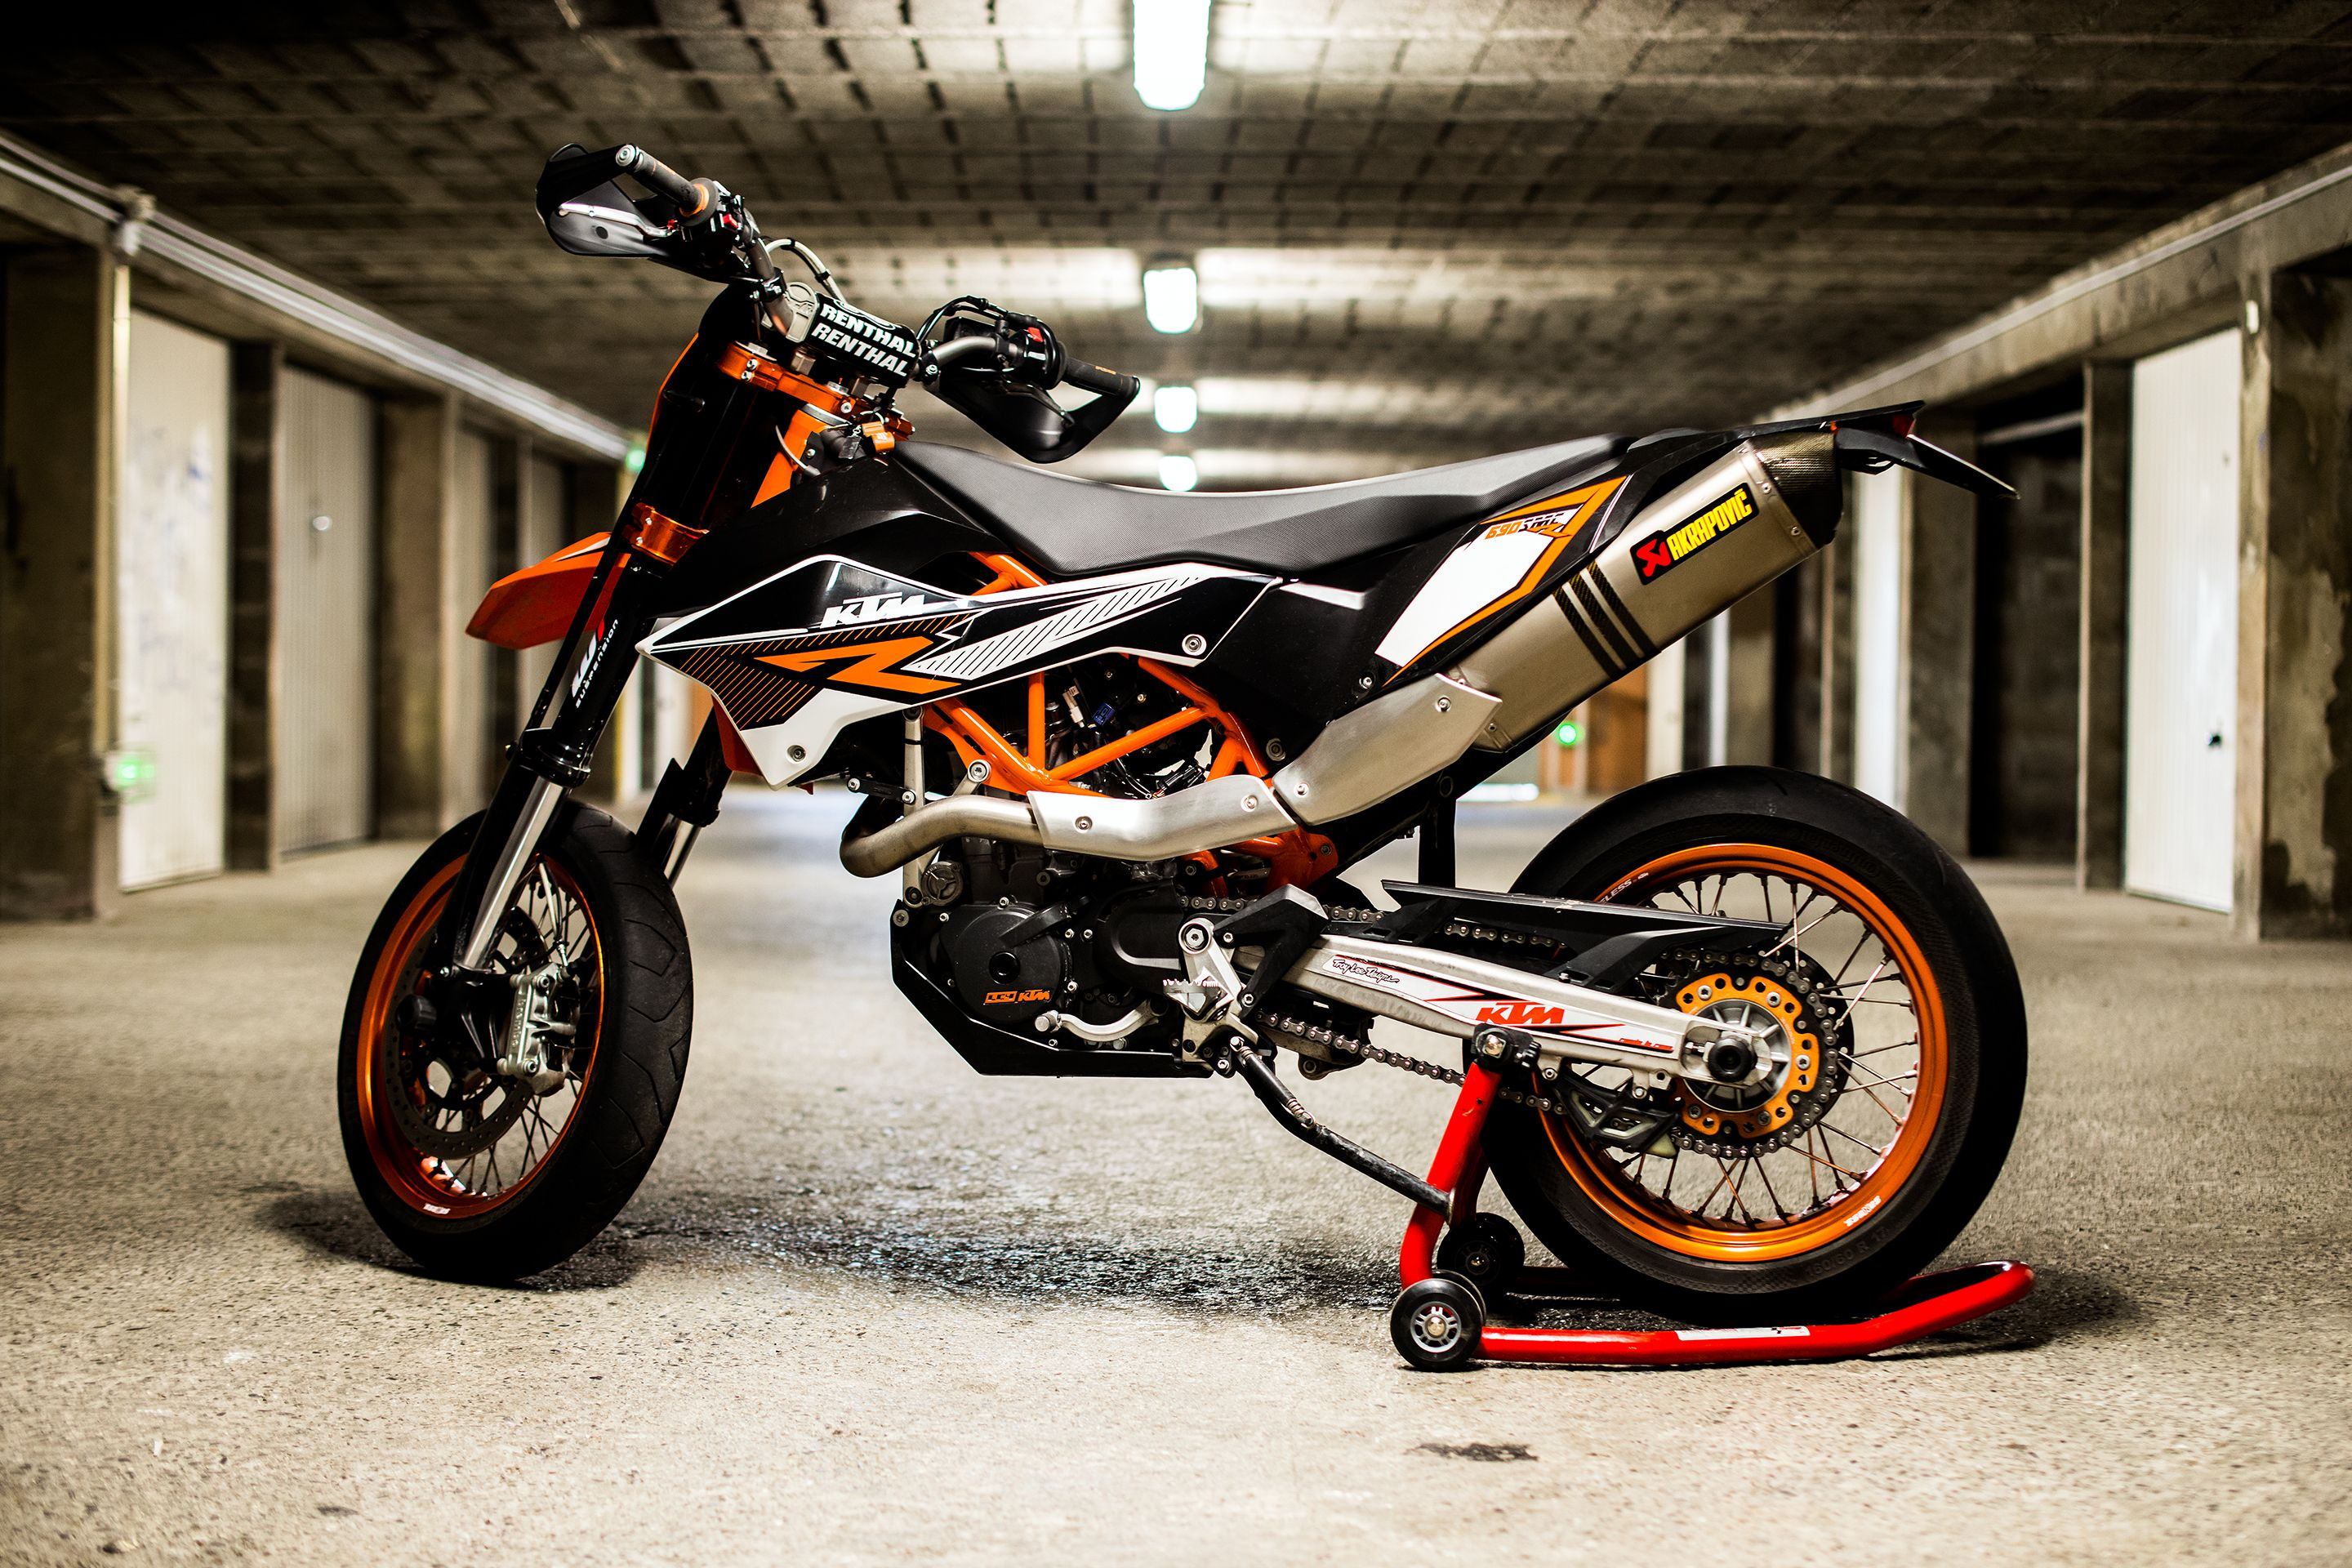 ktm 690 smc r supermoto pinterest ktm 690 ktm duke and dirt biking. Black Bedroom Furniture Sets. Home Design Ideas